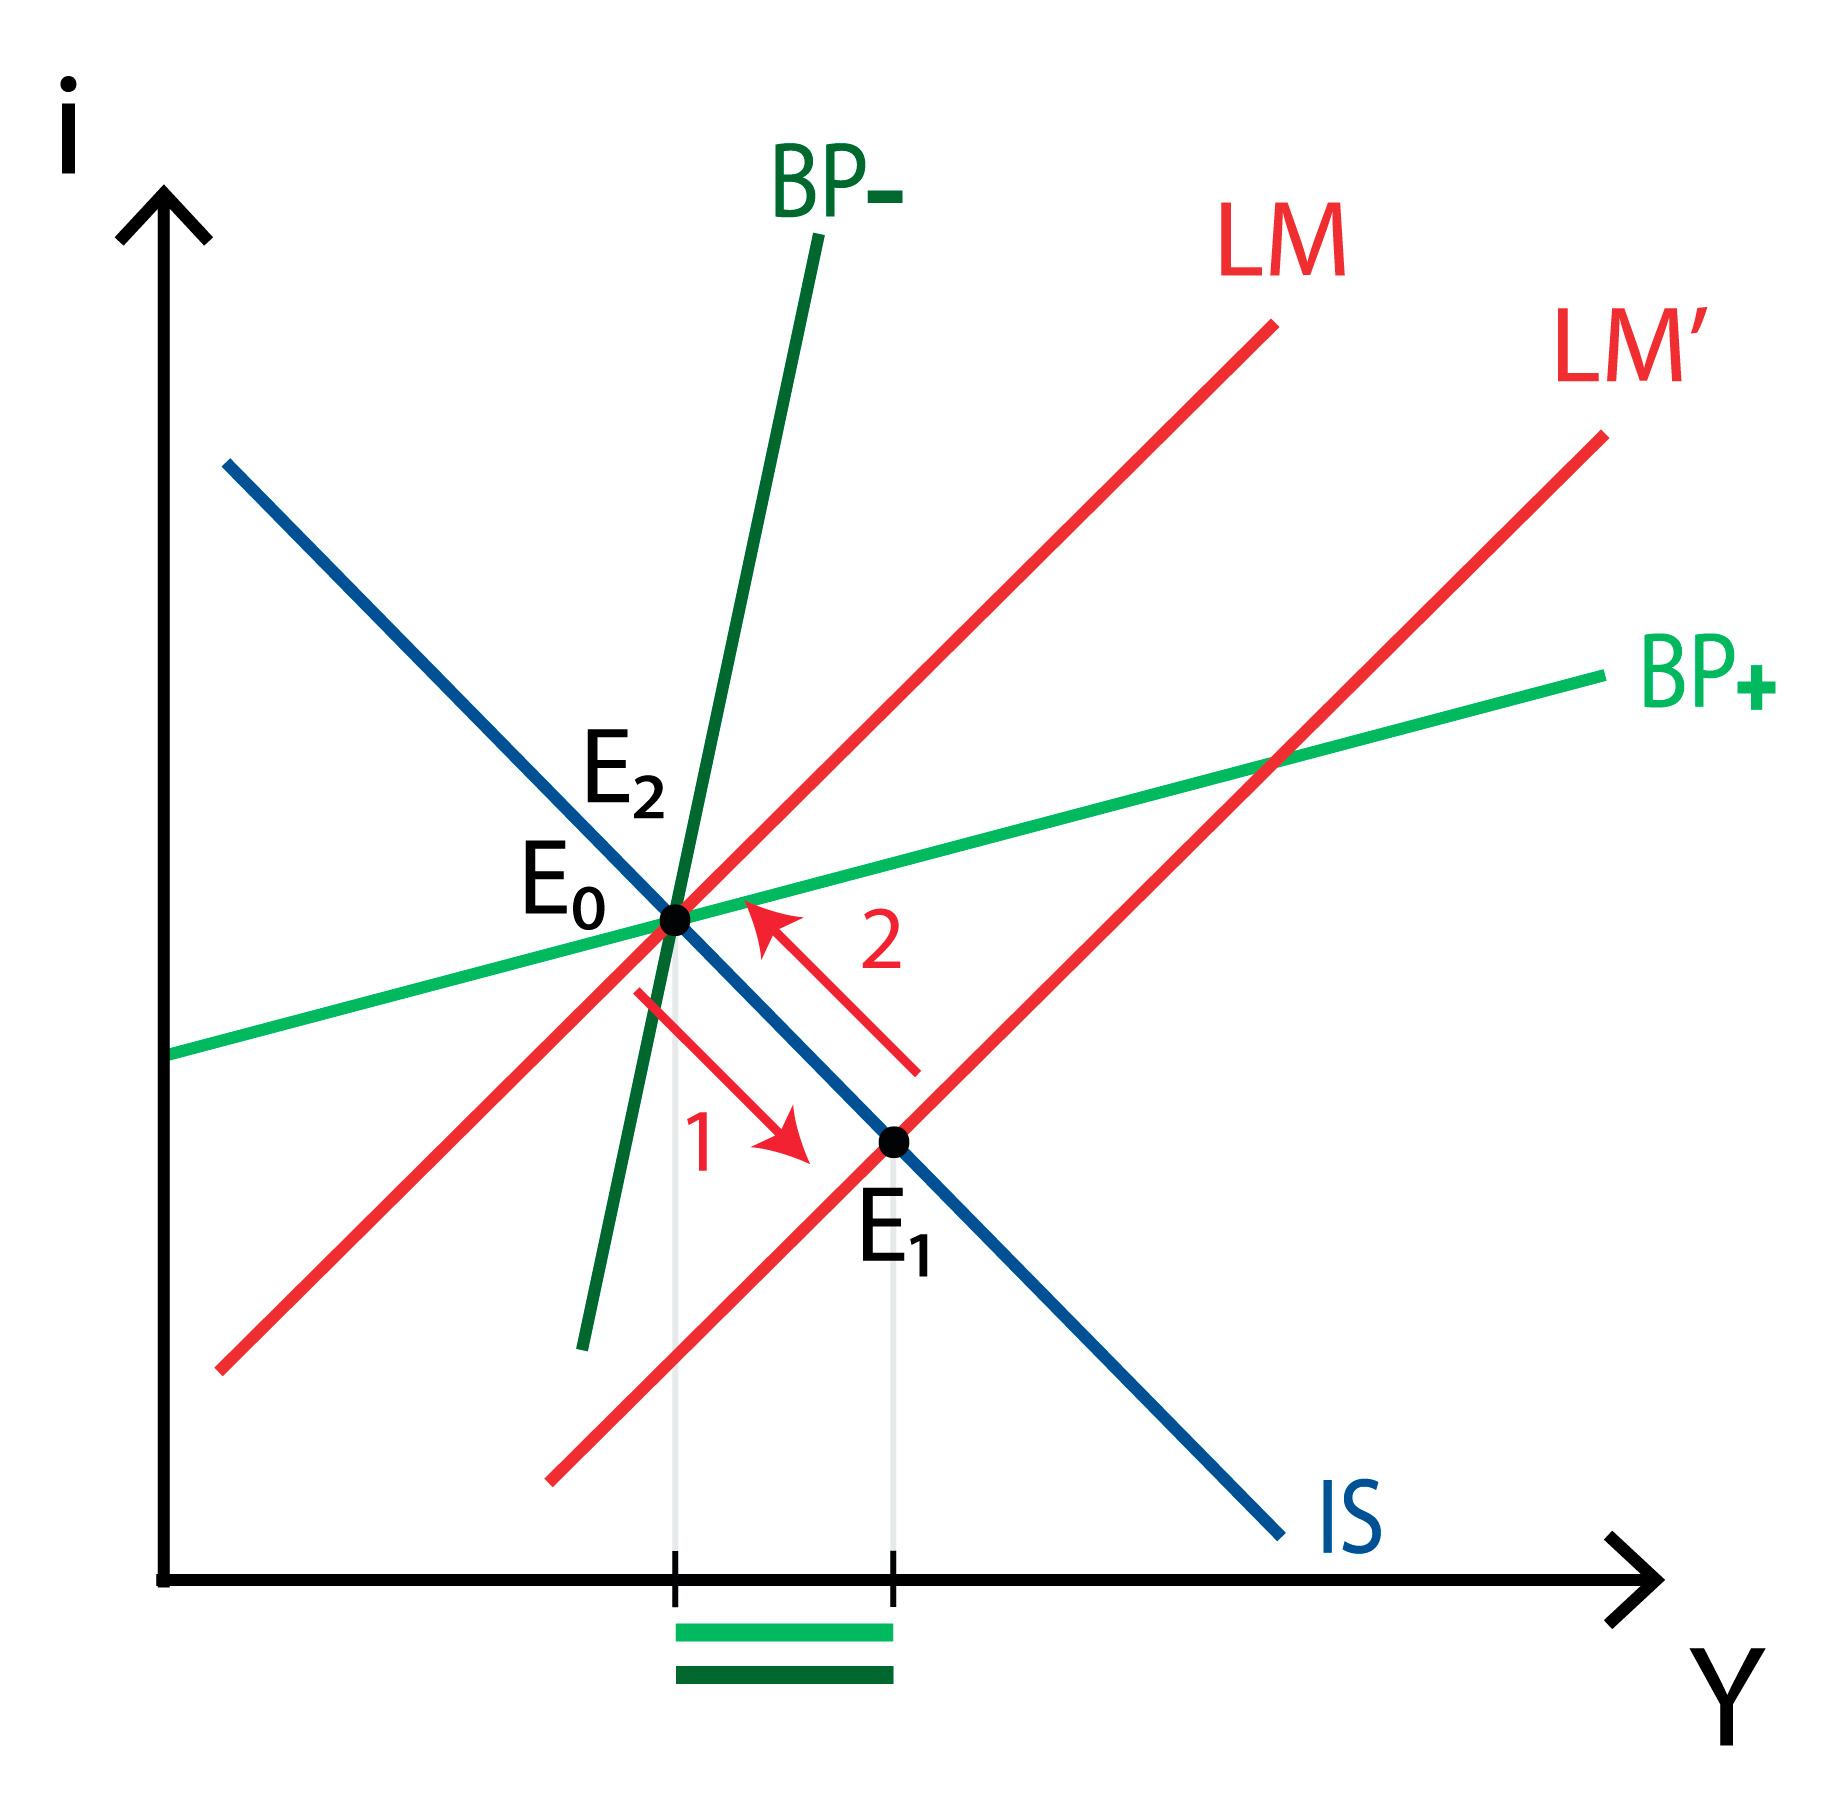 IS-LM-BP model - Imperfect capital mobility - Fixed exchange - Monetary policy